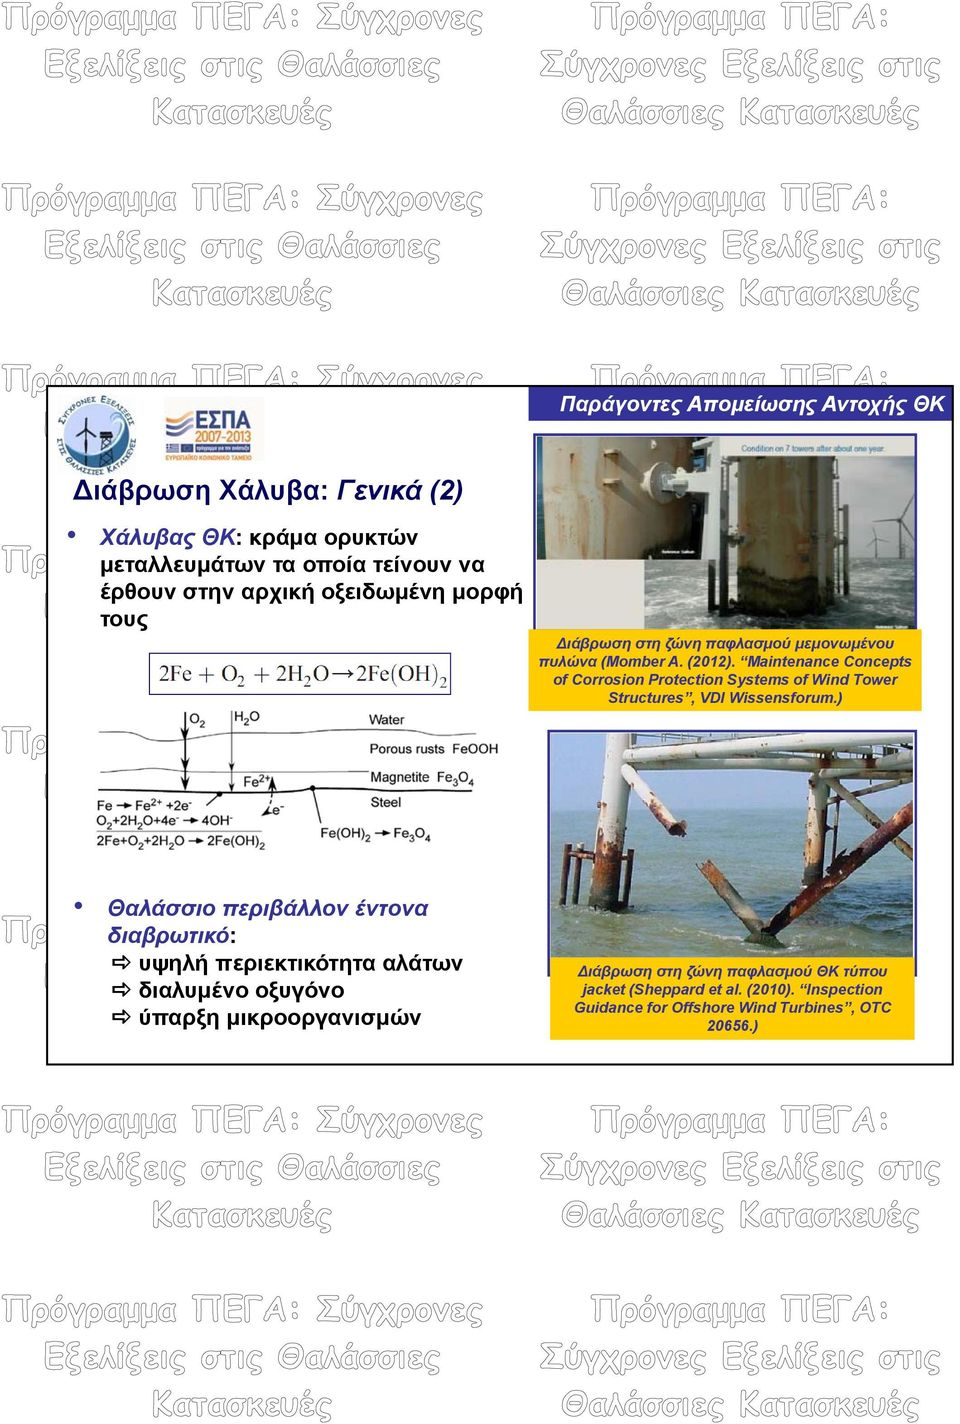 Maintenance Concepts of Corrosion Protection Systems of Wind Tower Structures, VDI Wissensforum.